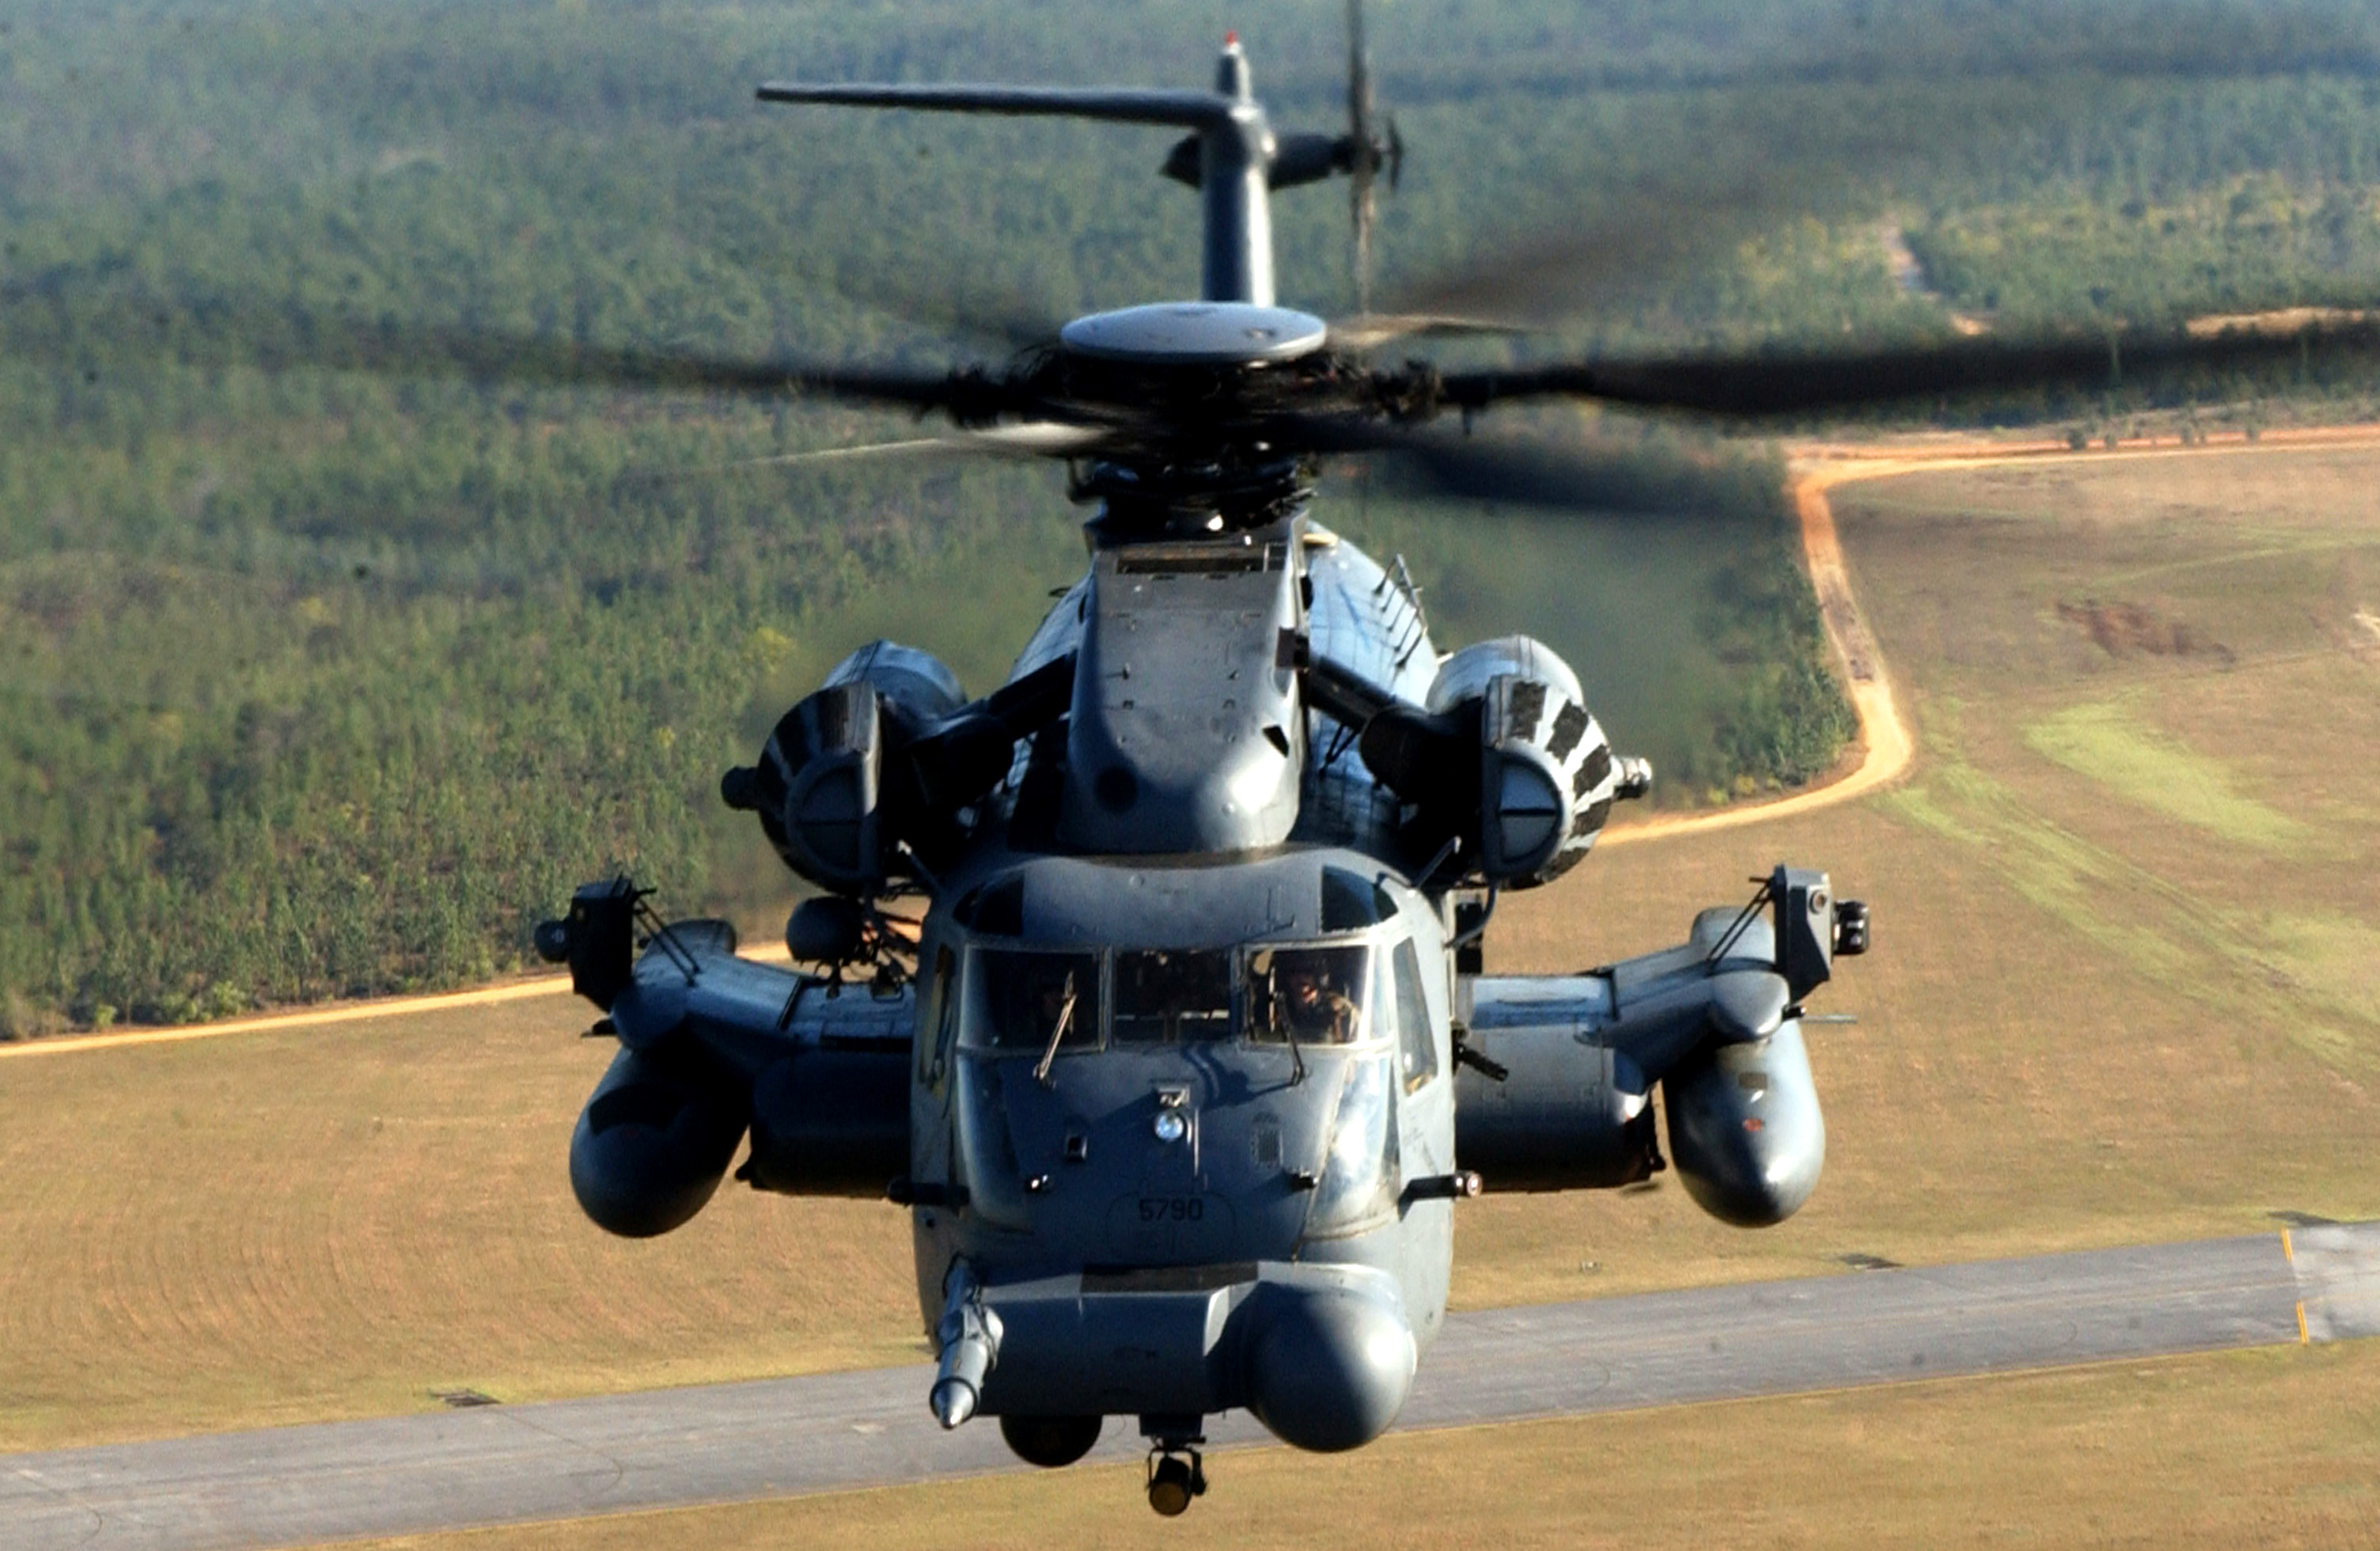 rc helicopters books with File Mh 53 Pave Low Us Military on EC121 save besides View article moreover File MH 53 Pave Low US Military in addition F 4J VF 84 Jolly Rogers   need together with Mistletoe Drones On And On.